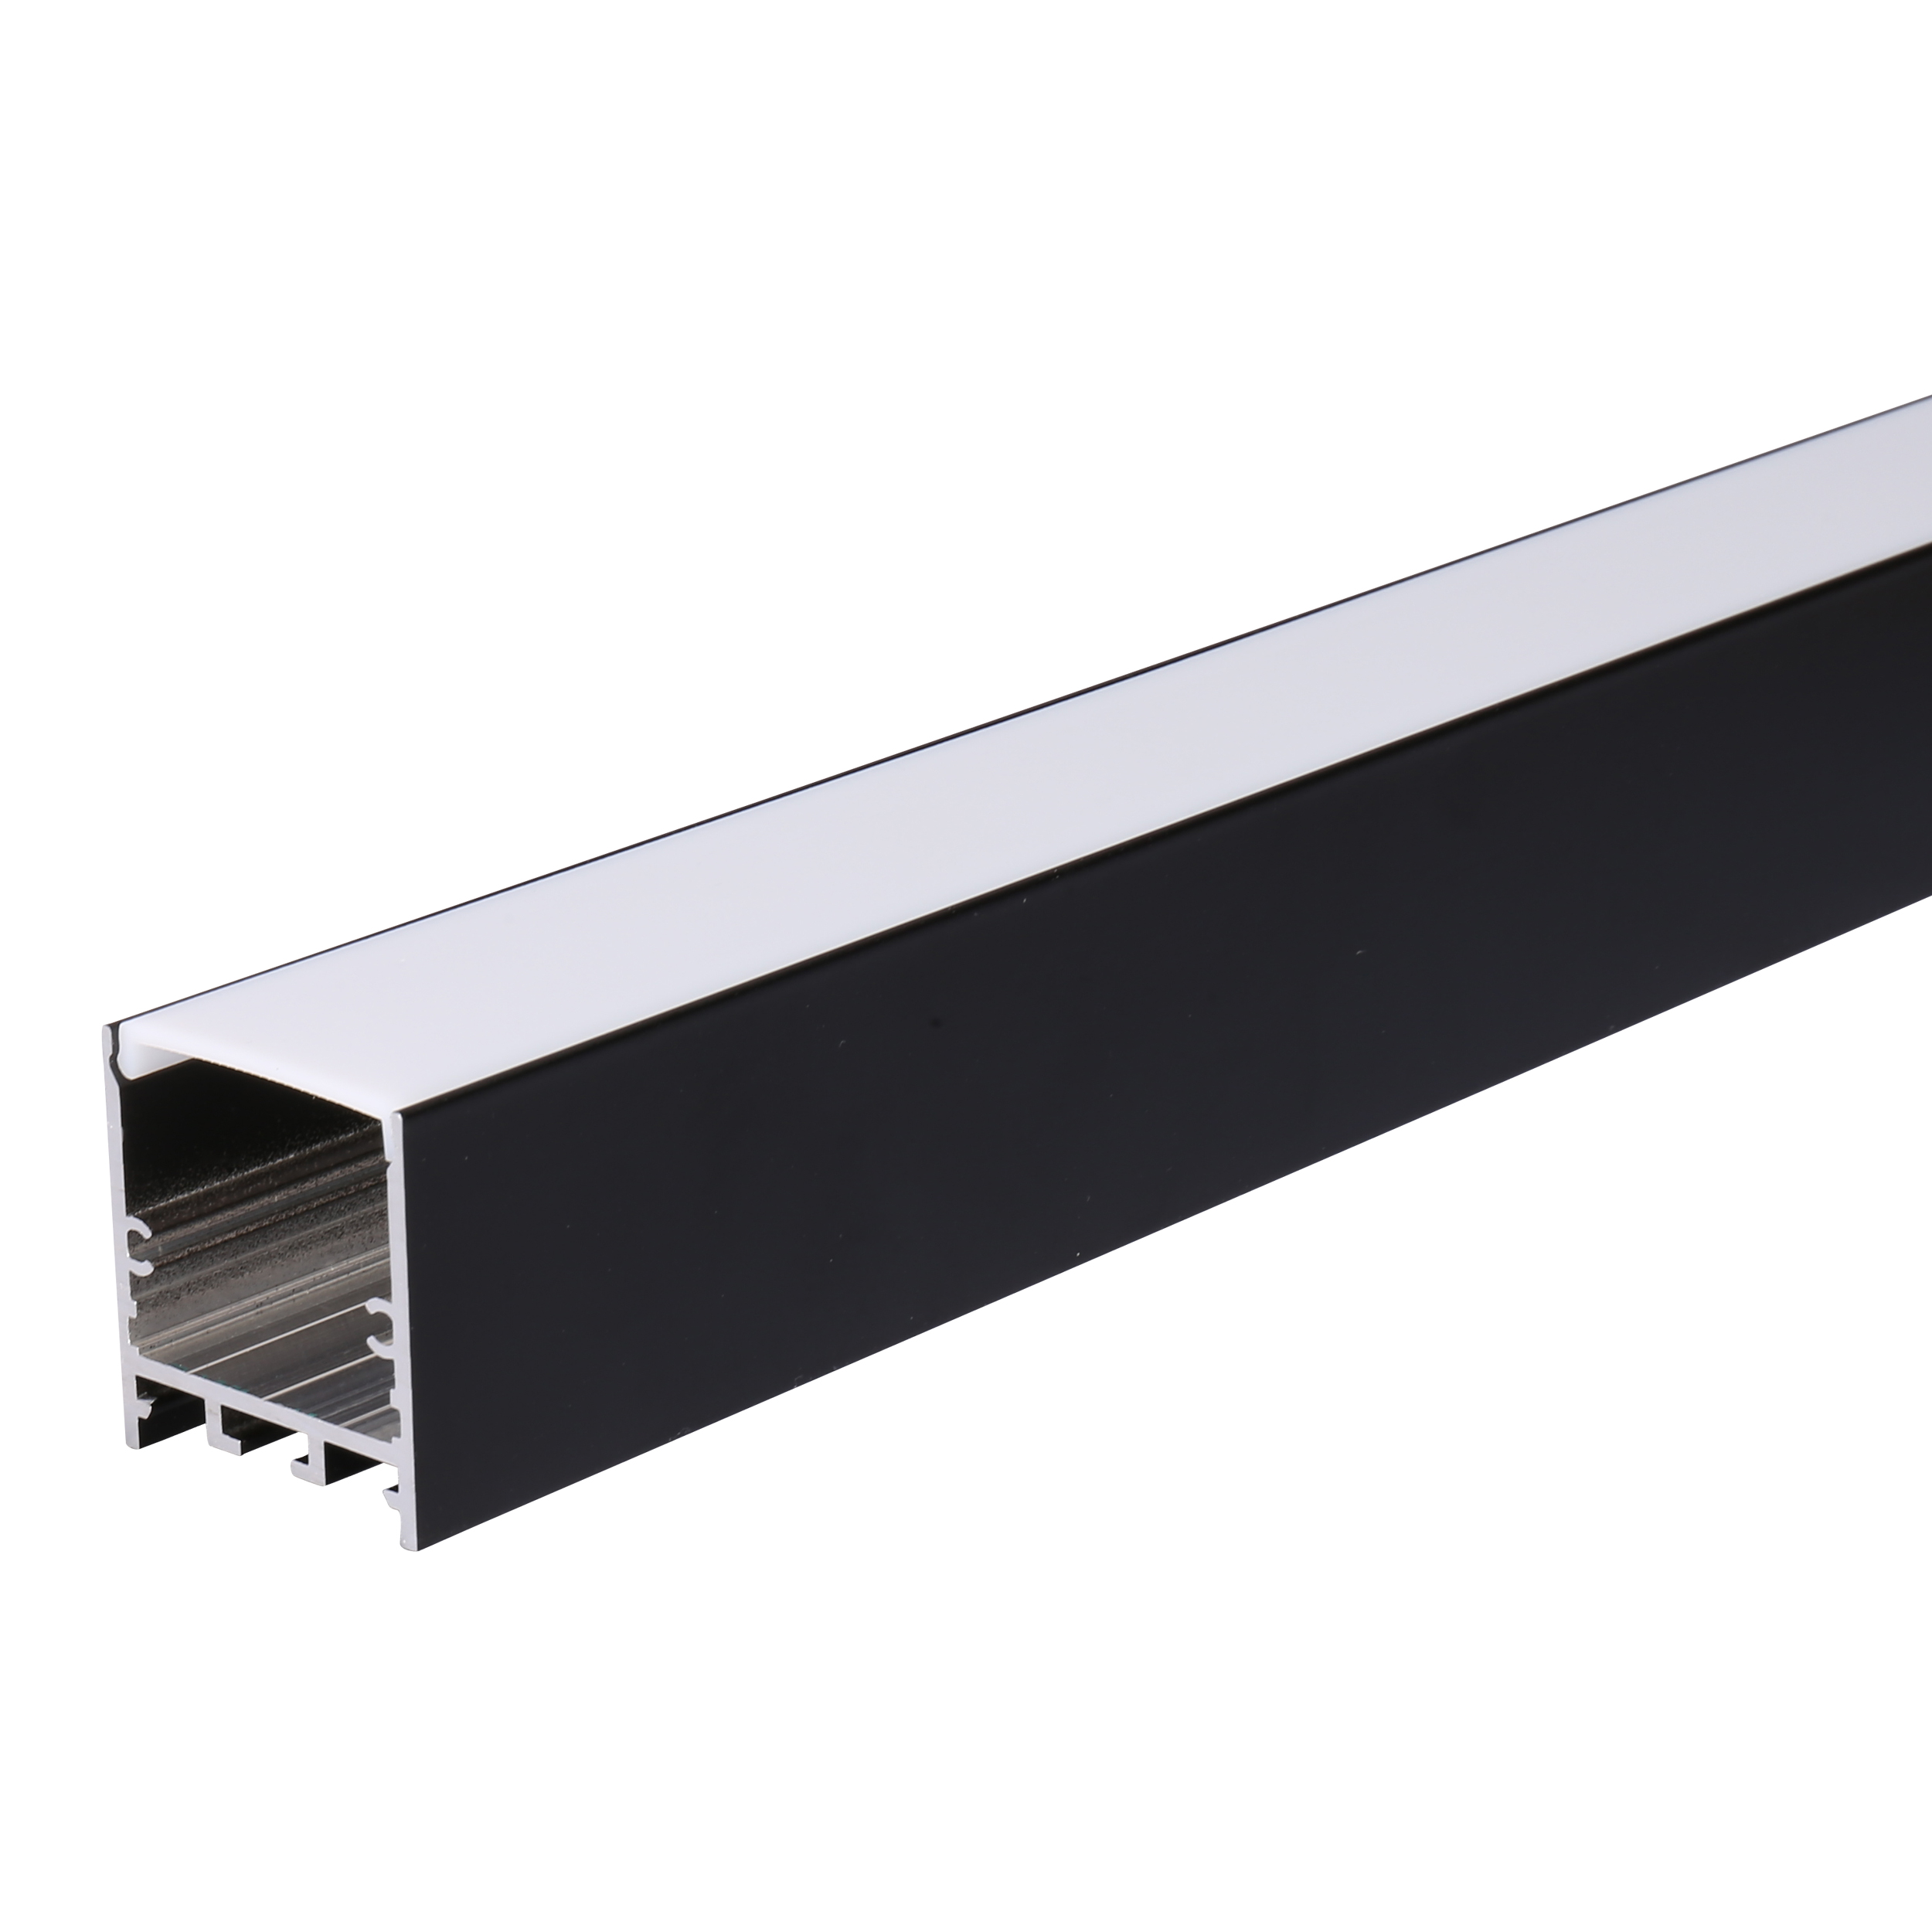 6063 T5 Industrial/Door/Window/Led Extrusion Rectangular Tube Aluminium Profile